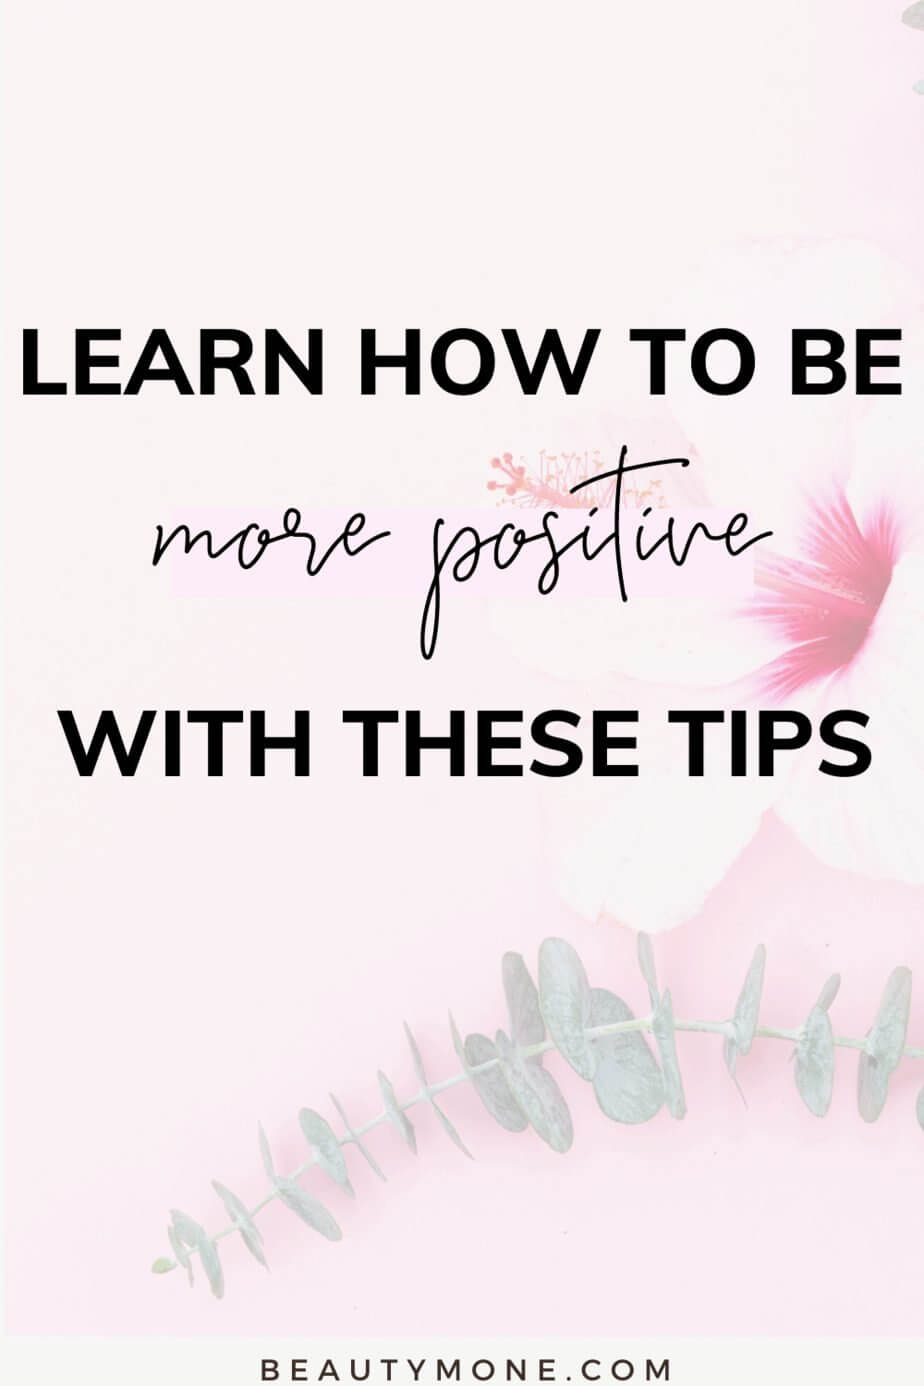 7 Successful Tips On How To Be More Positive ⋆ Beautymone